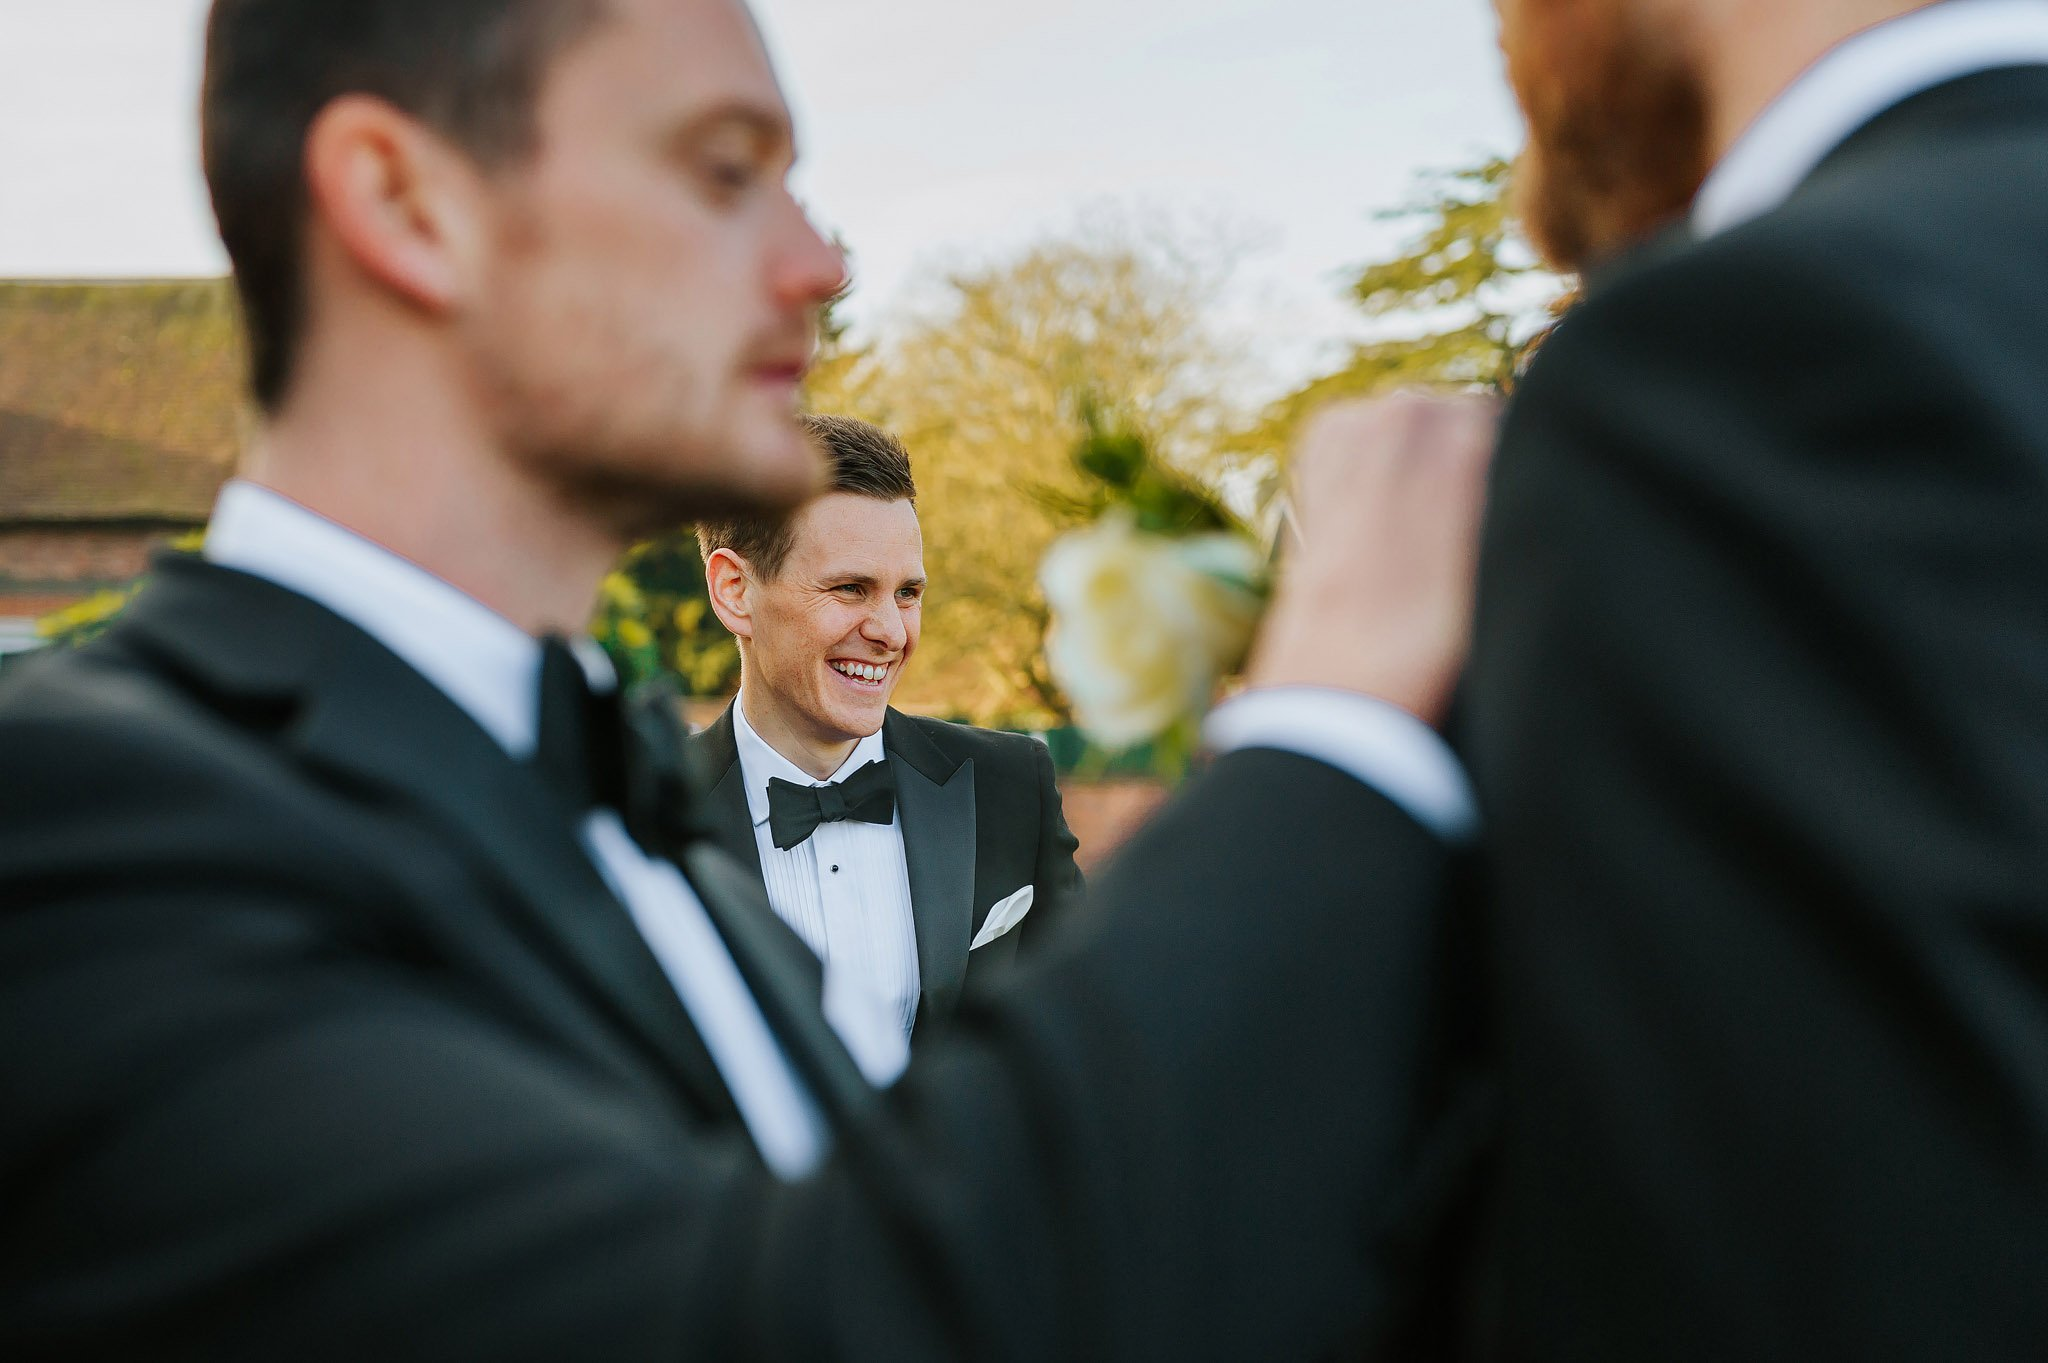 Coombe Abbey wedding in Coventry, Warwickshire - Sam + Matt 12